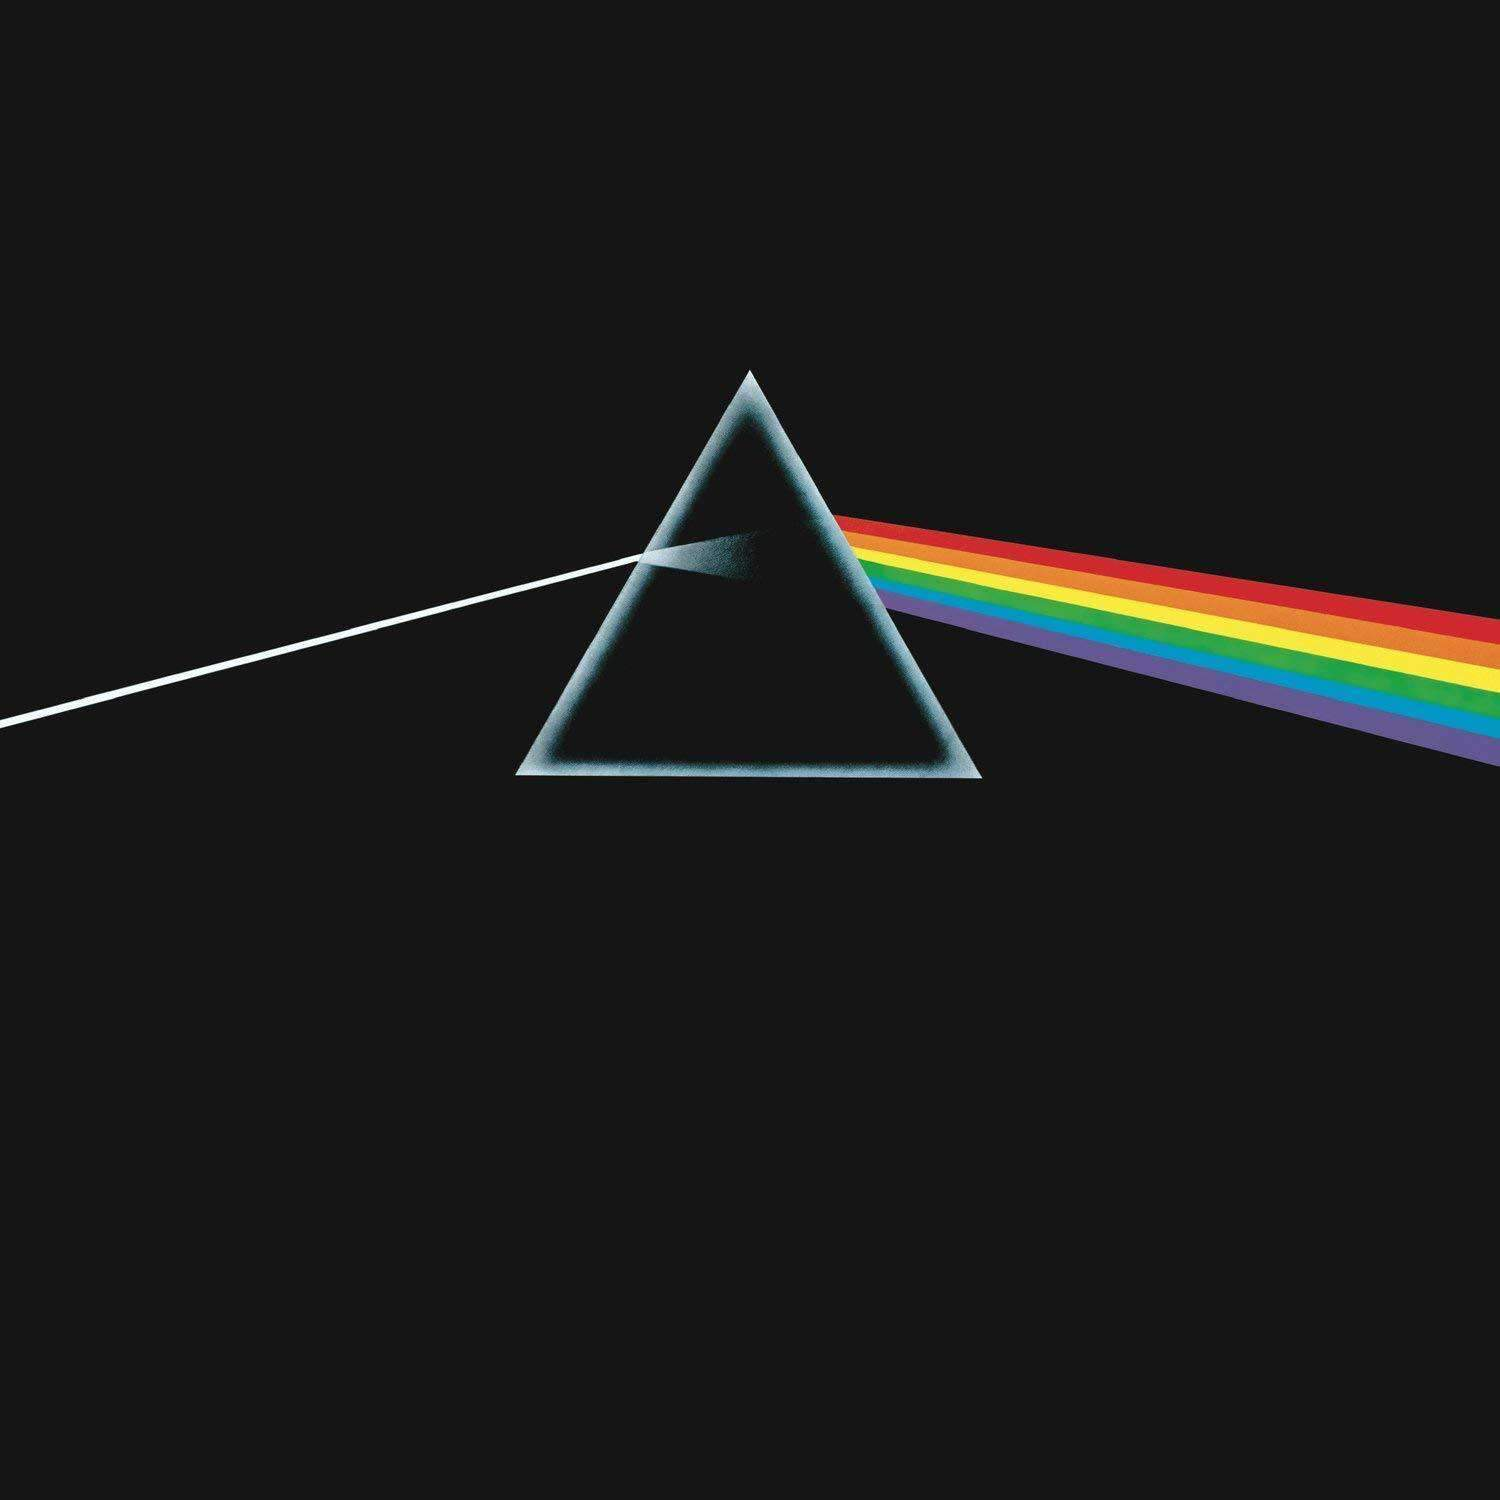 Pink Floyd - The Dark Side Of The Moon [LP] (180 Gram, 2016 version, stereo remastered) (Vinyl) - Urban Vinyl | Records, Headphones, and more.